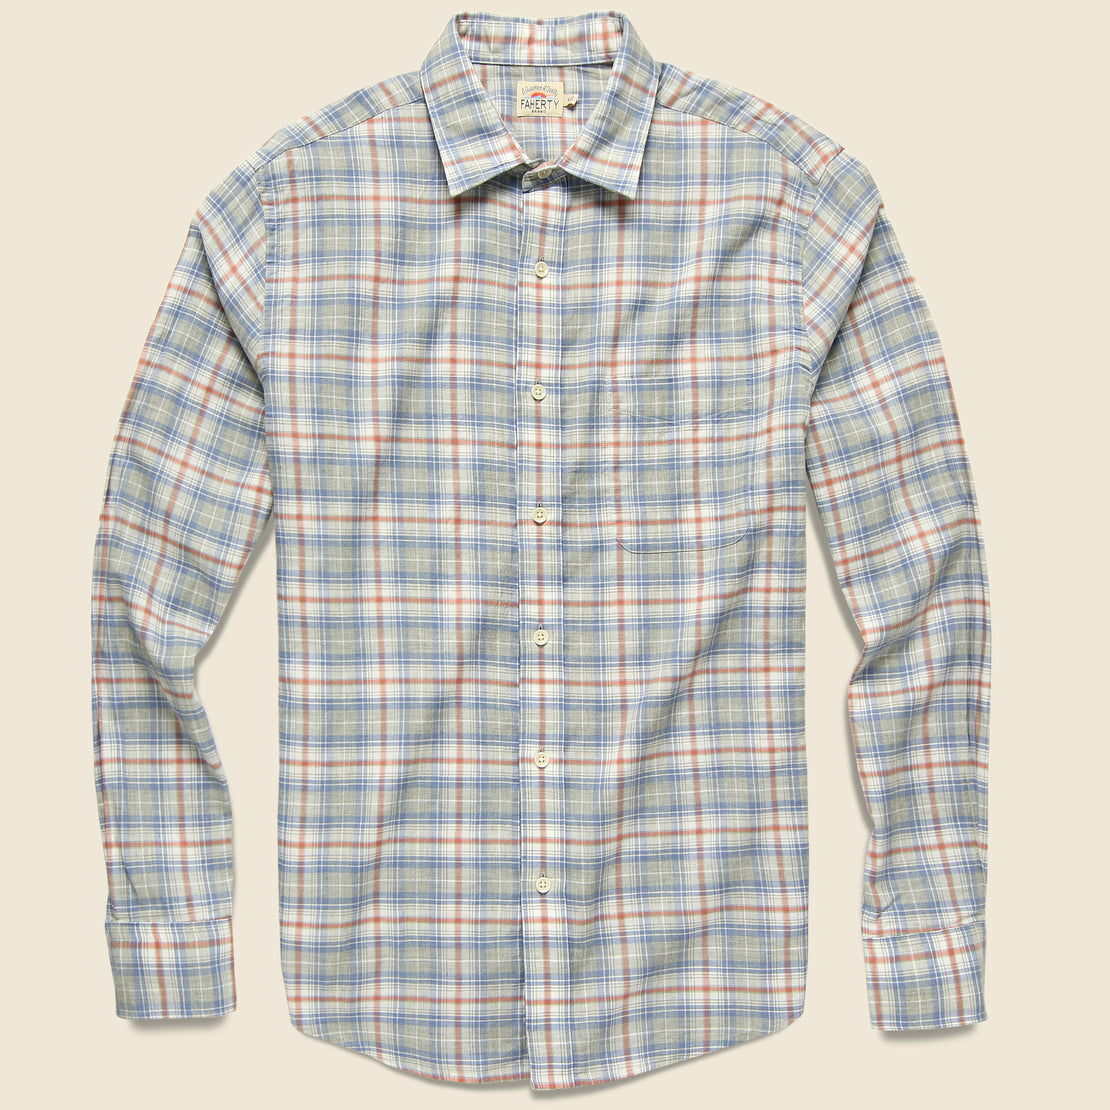 Faherty Everyday Shirt - Marin Coast Plaid